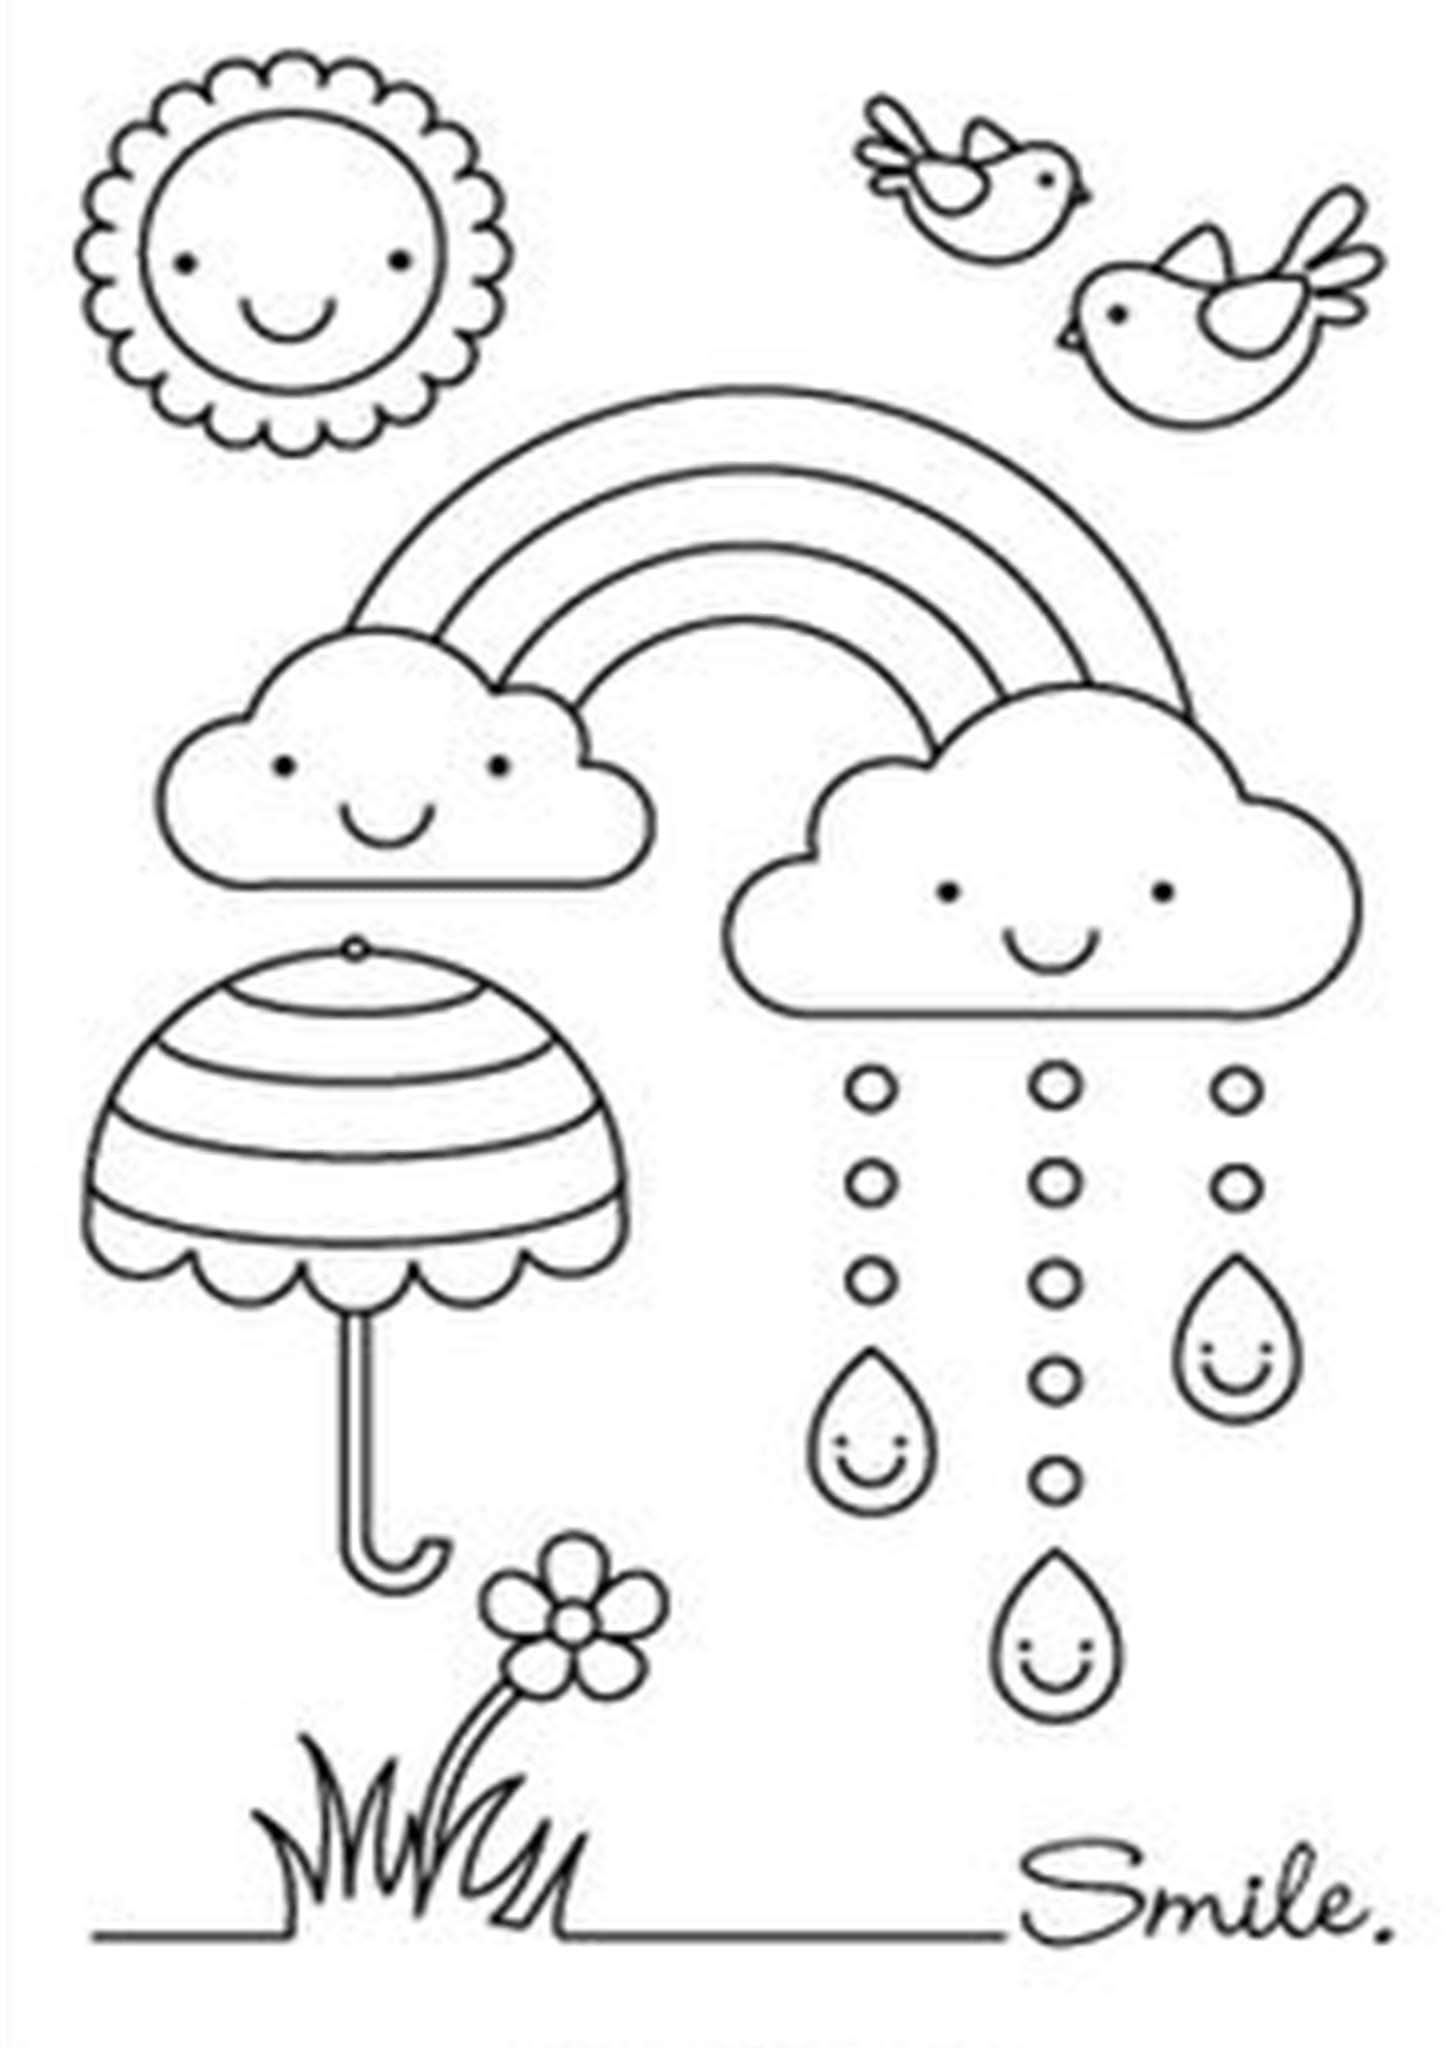 Free Easy To Print Rainbow Coloring Pages Coloring Pages Coloring Books Coloring Sheets